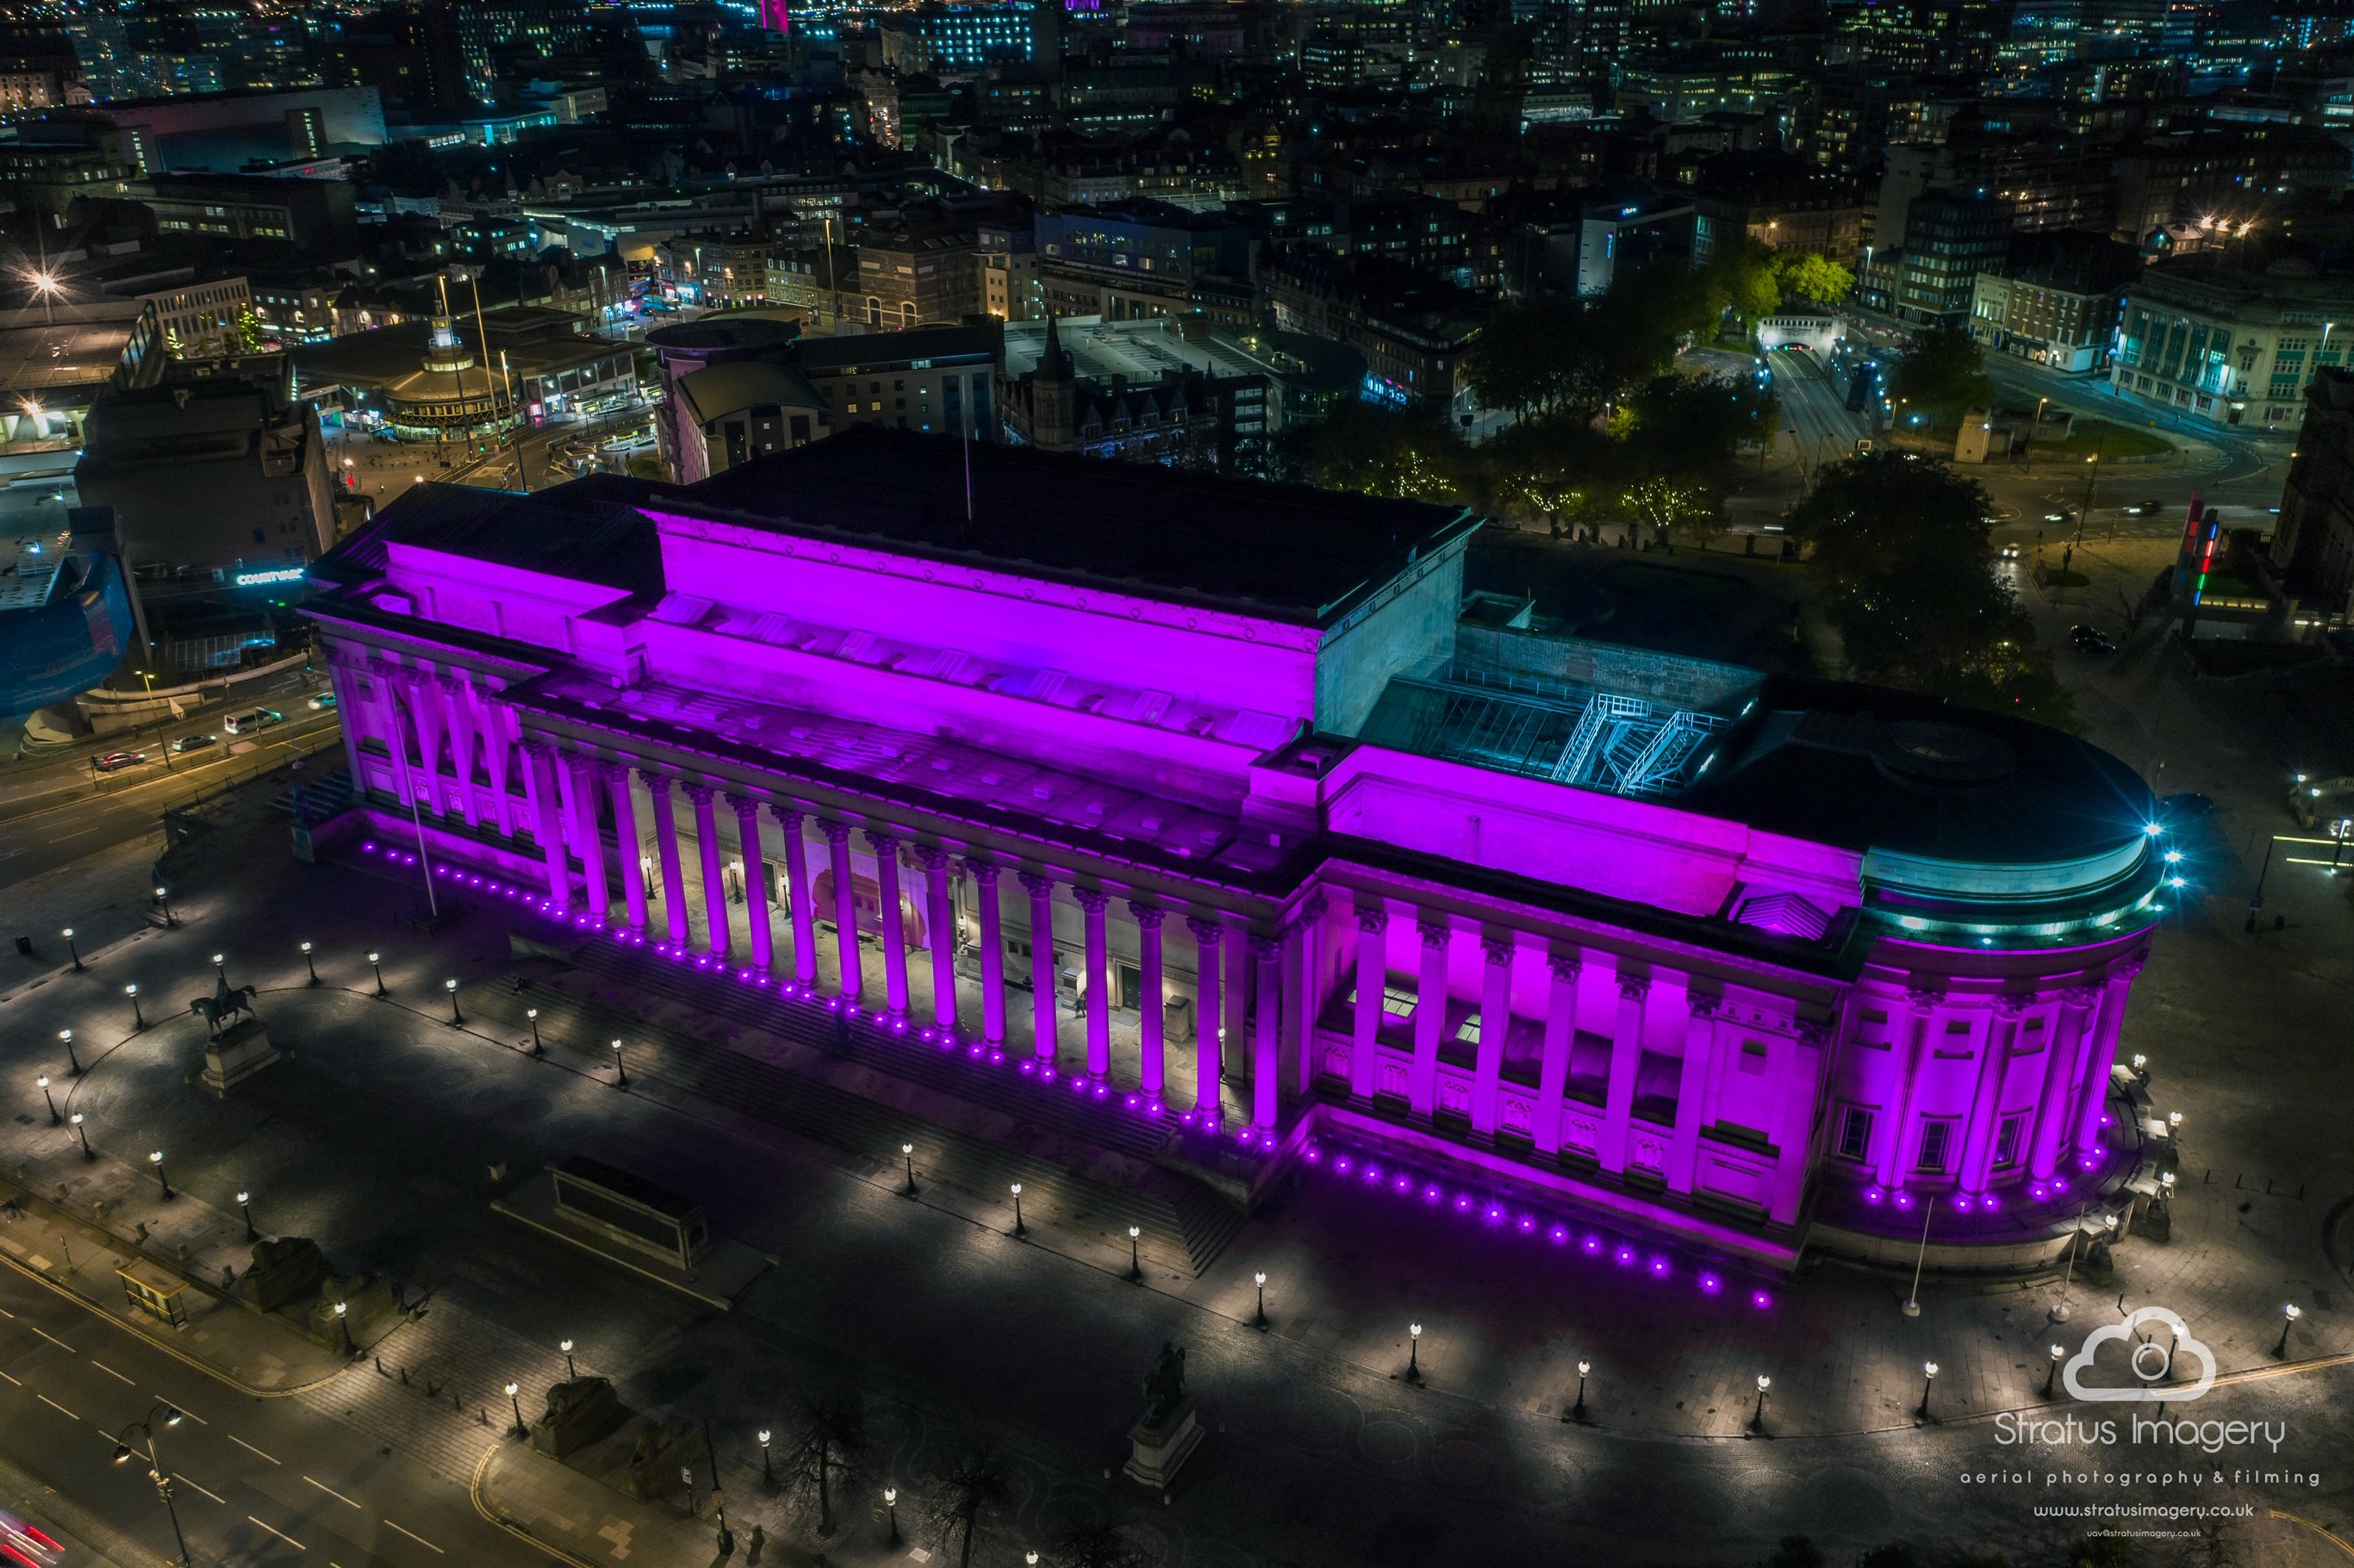 St George's Hall lit in purple light featured in an arial photograph at night